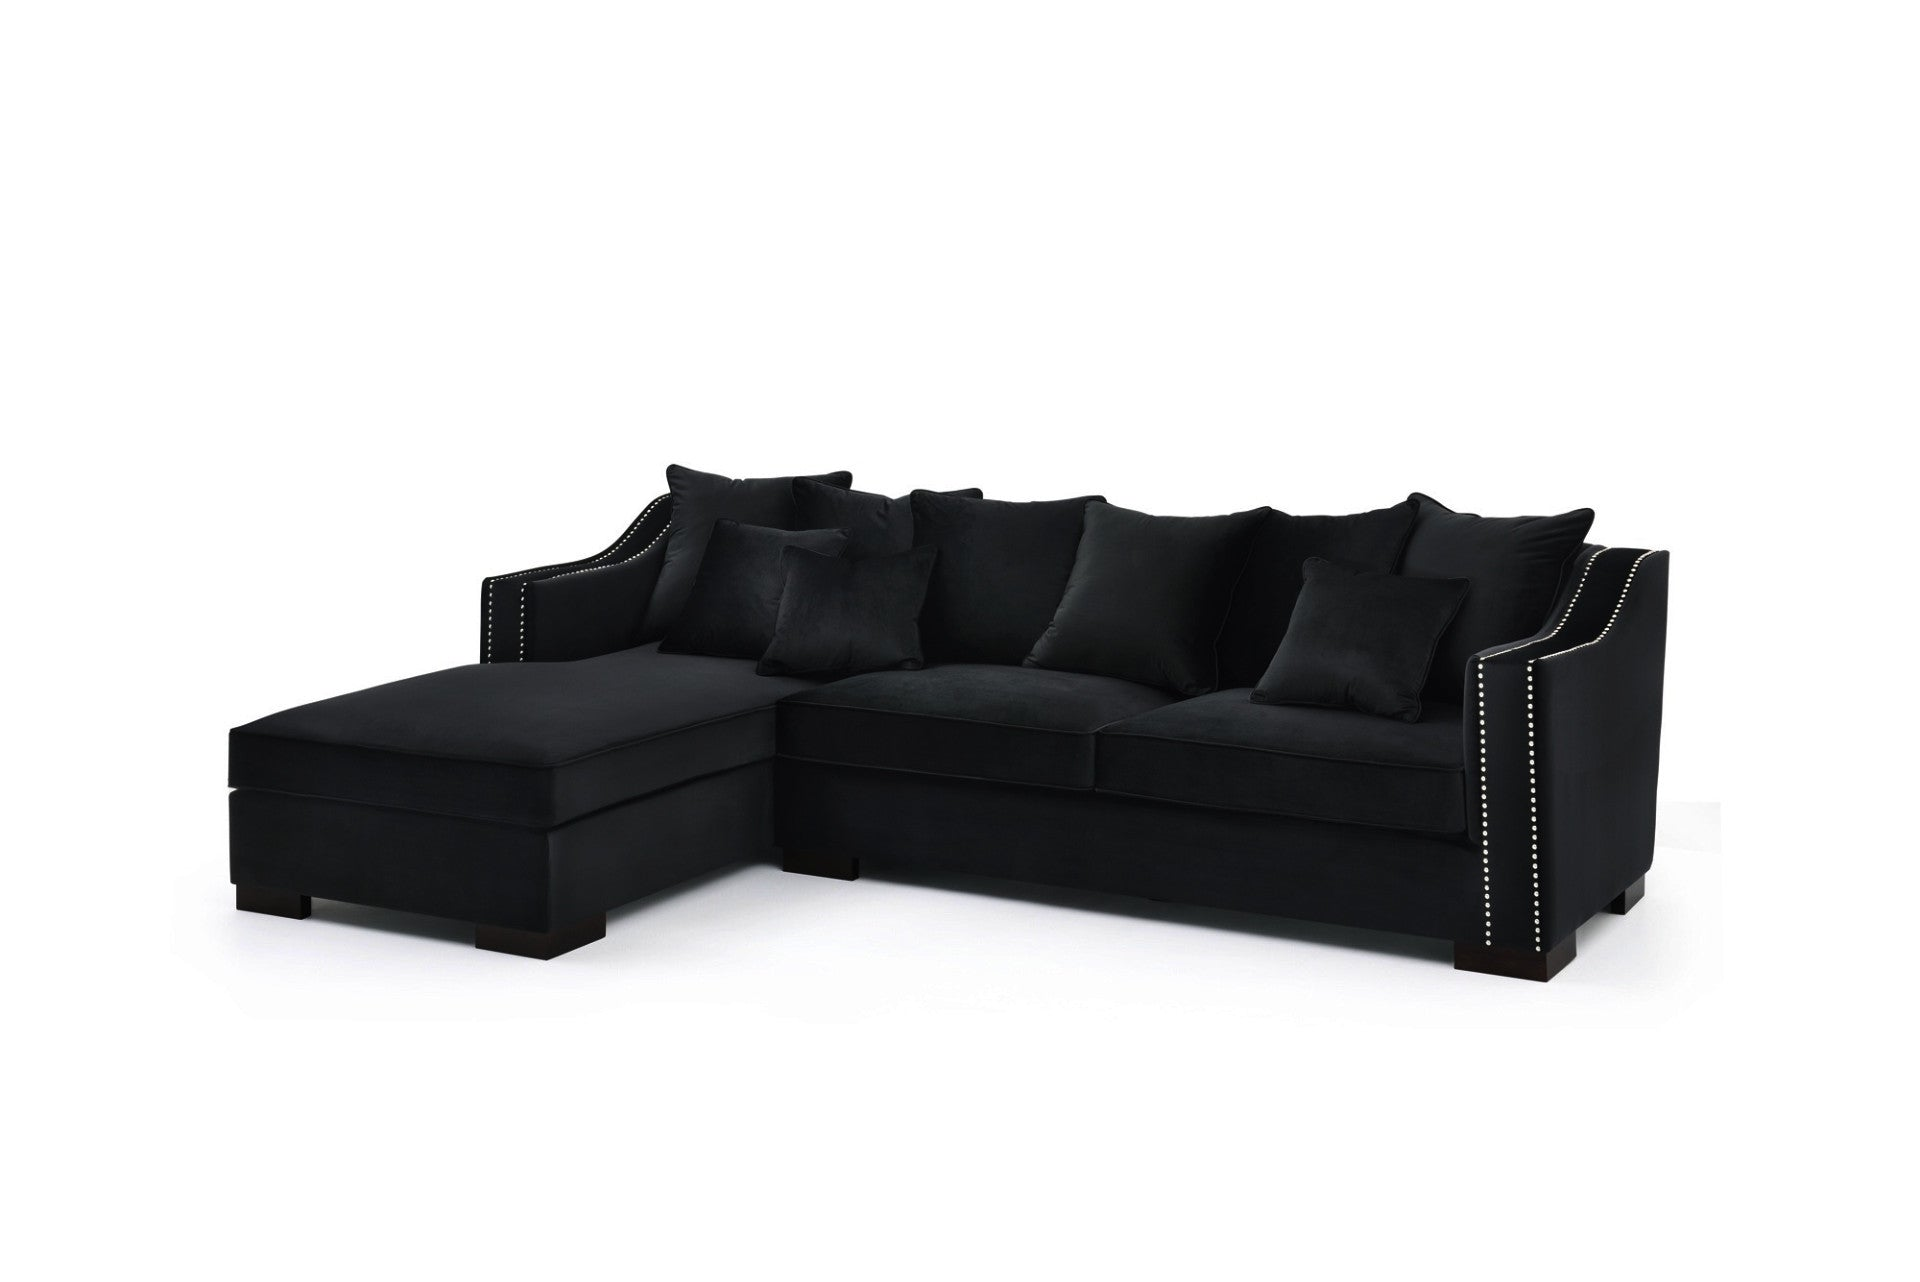 Savannah Lounge Sofa 281x95x84cm (Sort Velour) - høyrevendt